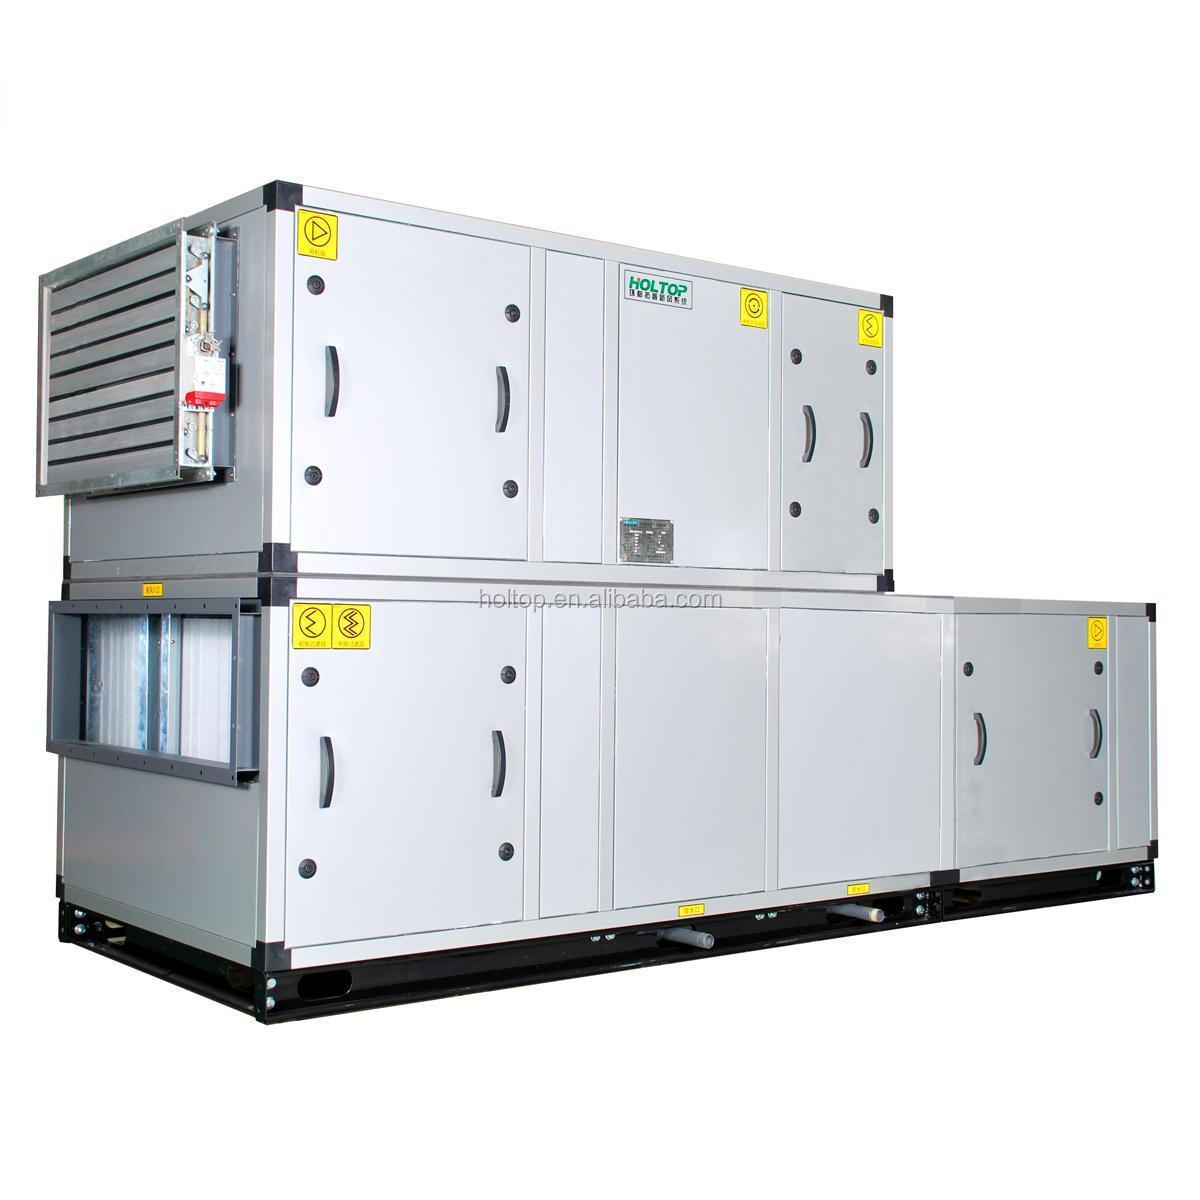 Ceiling Heat Exchanger : Ceiling suspended air handling unit with plate heat